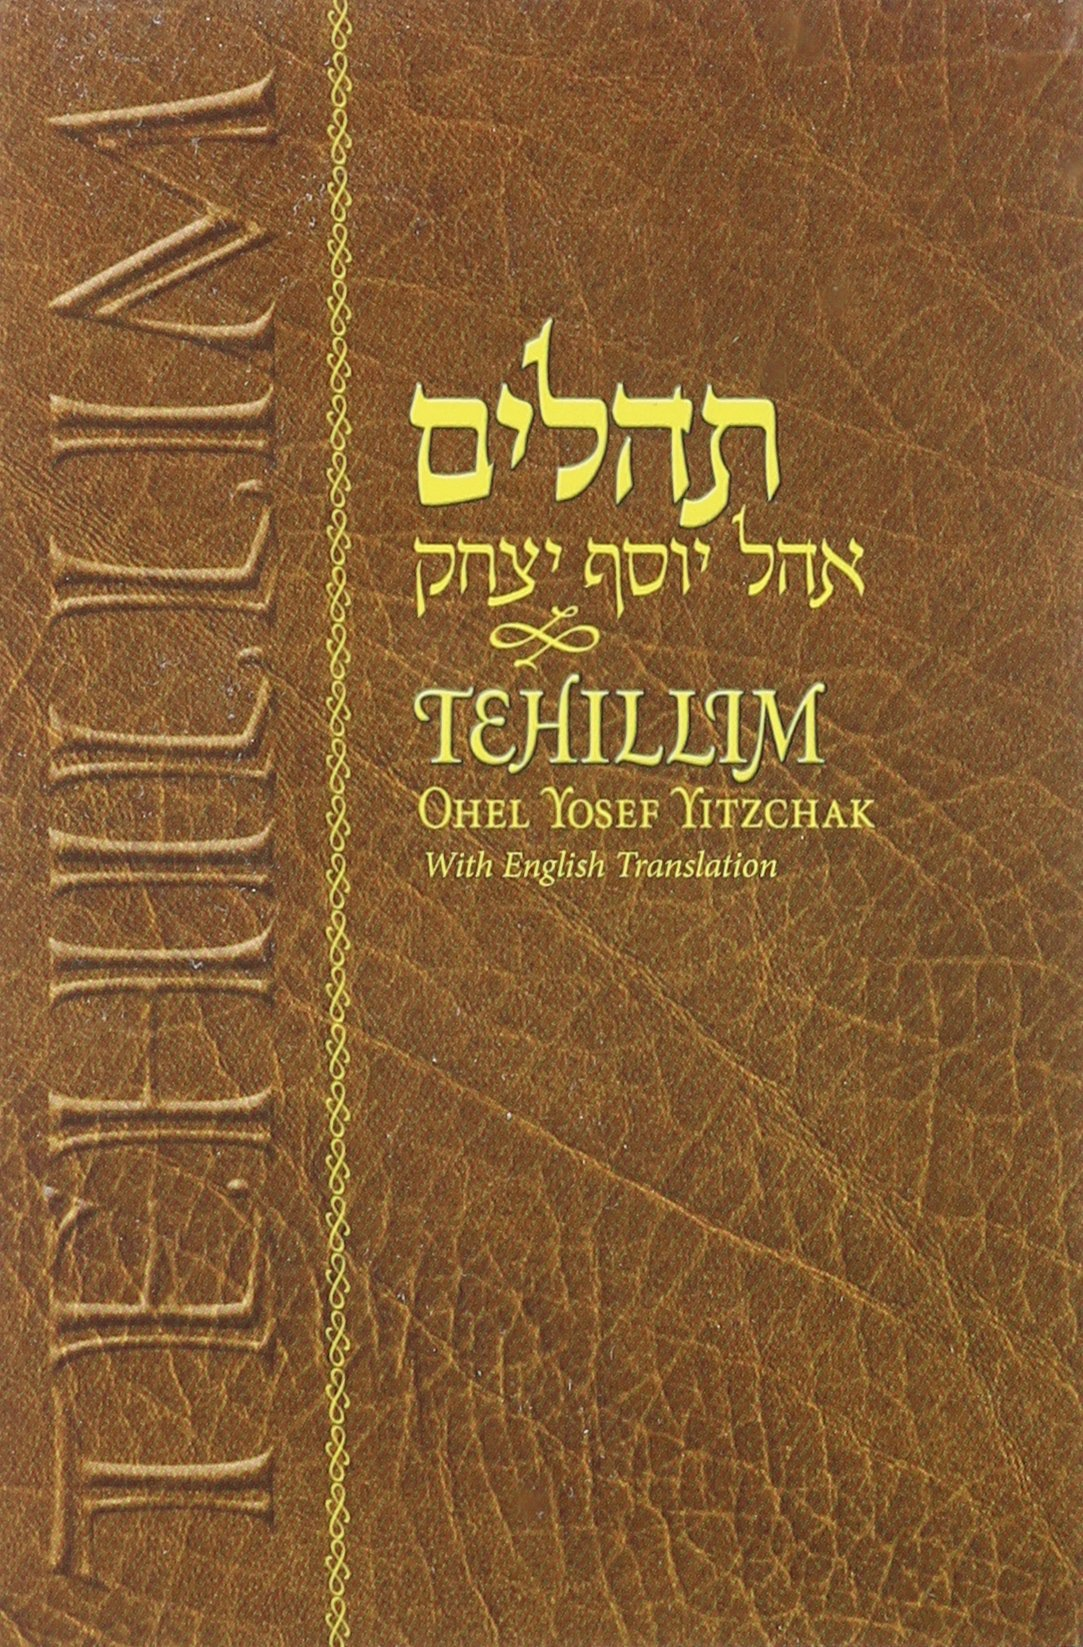 tehillim-ohel-yosef-yitzchok-with-english